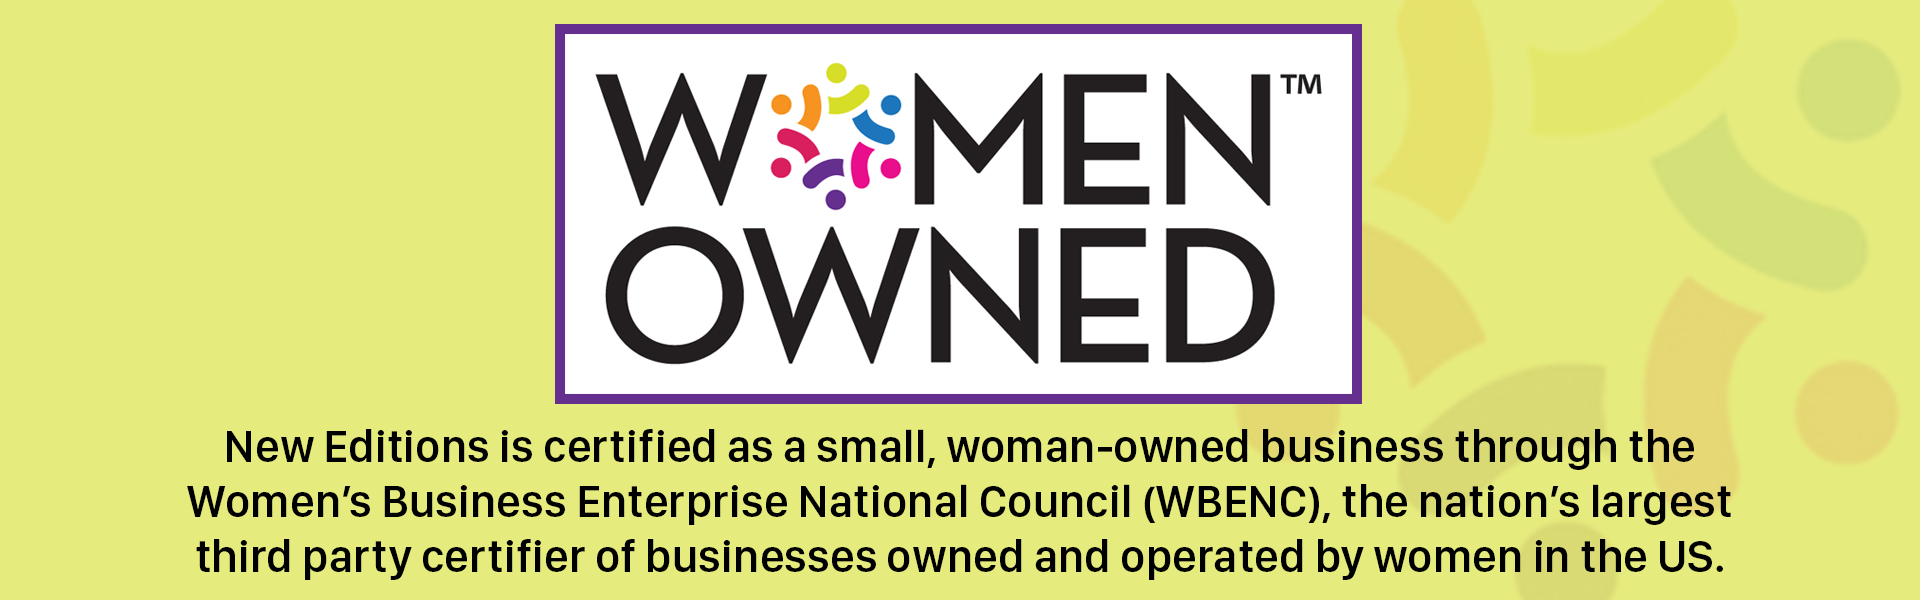 Women Owned! New Editions is certified as a small, woman-owned business through the Women's Business Enterprise National Council (WBENC), the nation's largest third party certifier of businesses owned and operated by women in the US.